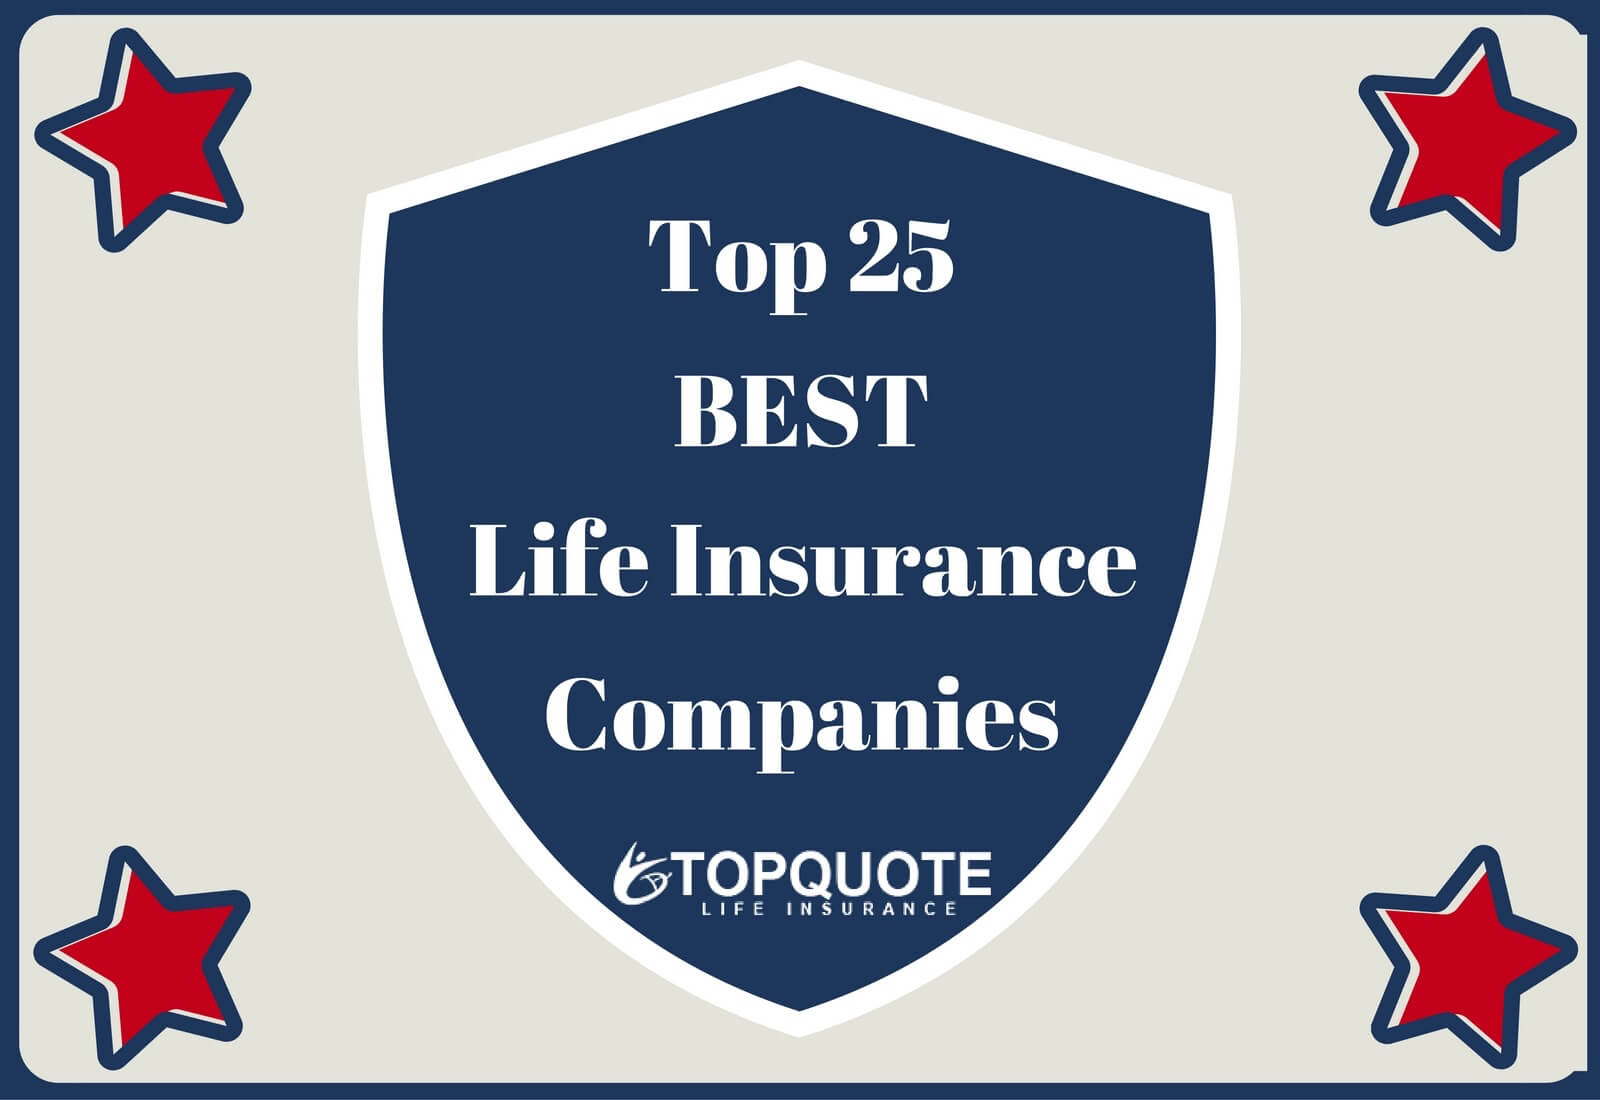 Accidental Life Insurance Quotes Top 25 Best Life Insurance Companies Choosing The Perfect Coverage